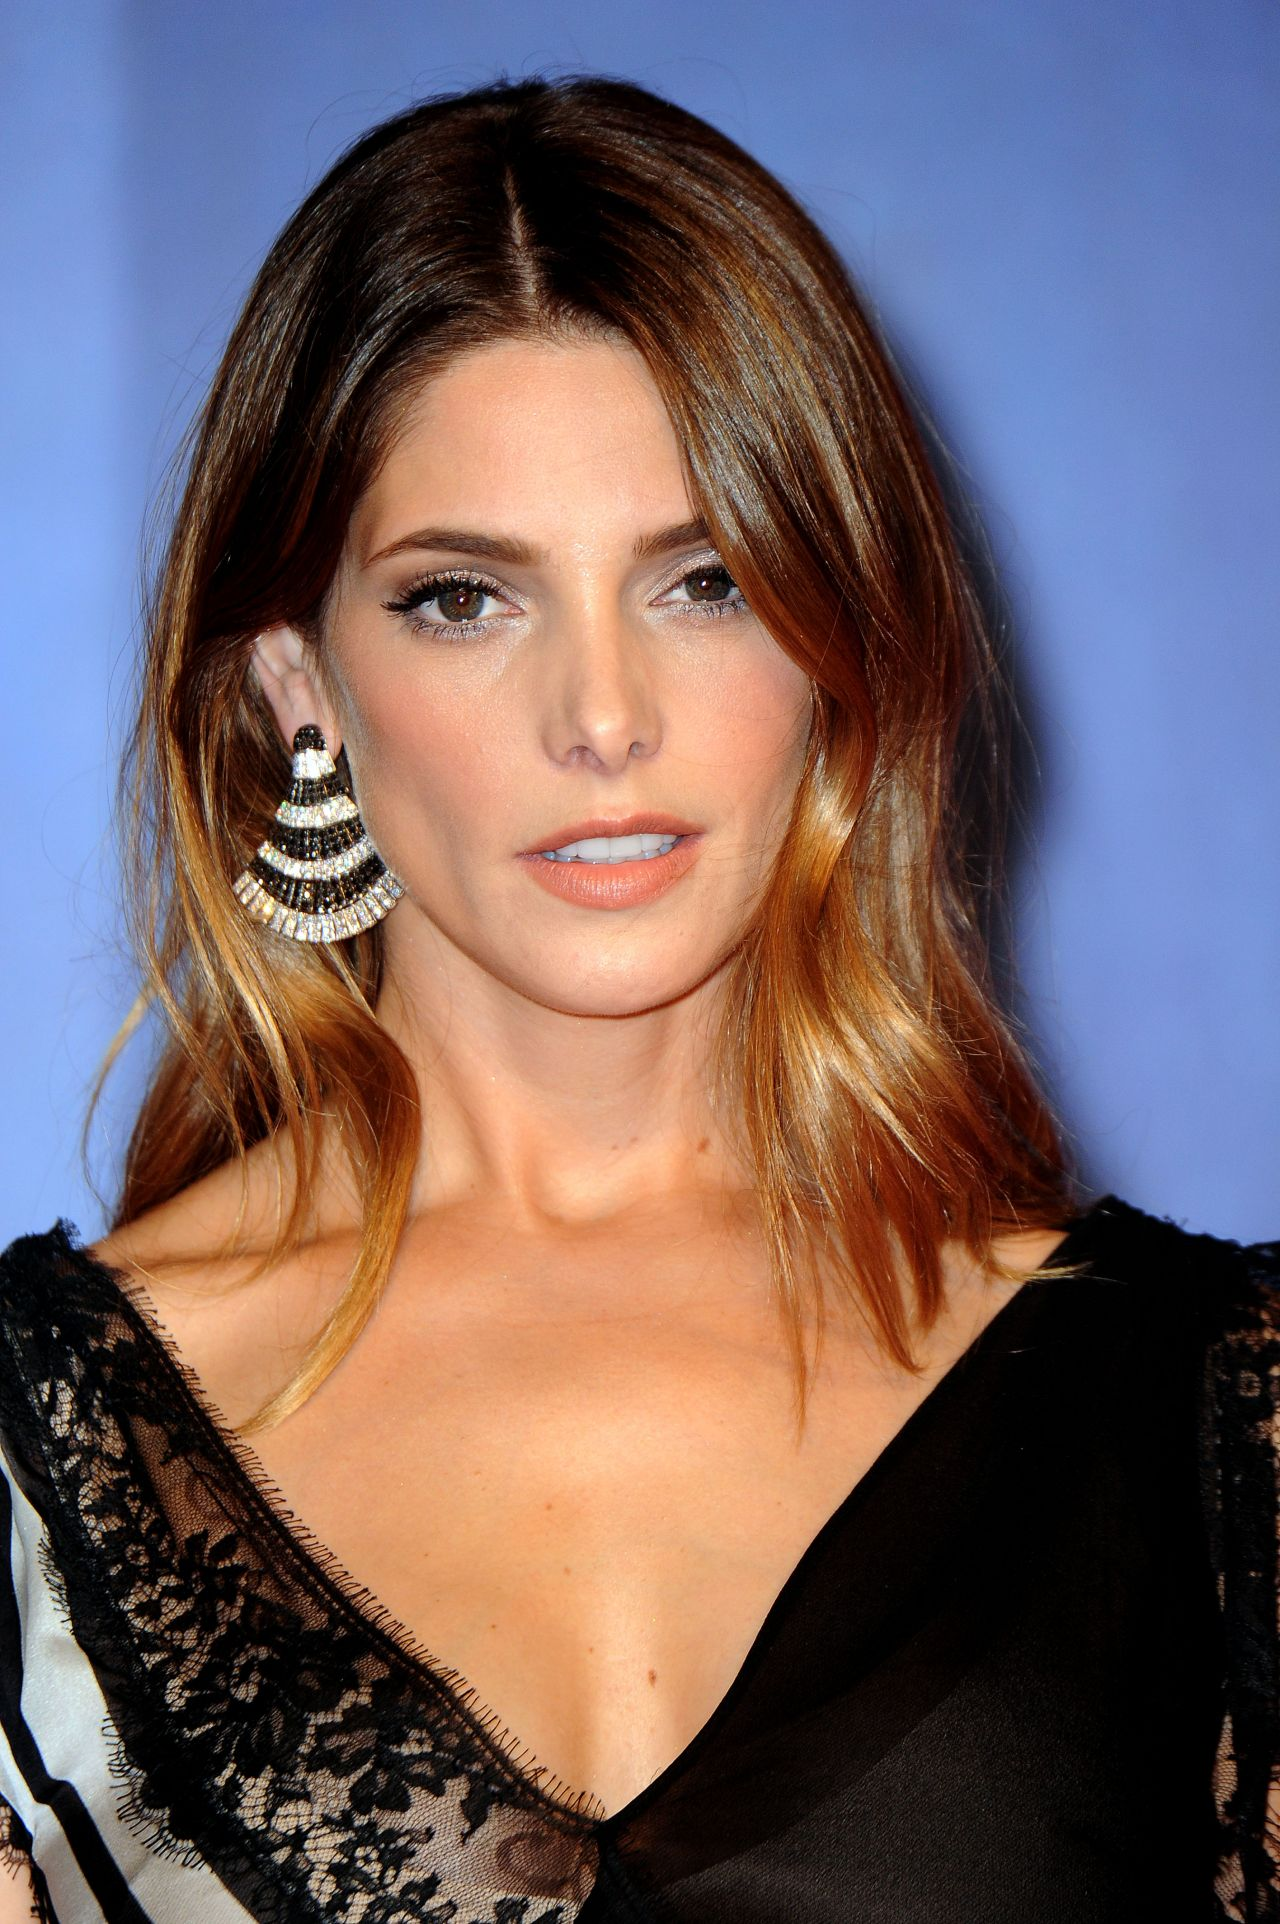 2019 Ashley Greene nudes (48 photos), Ass, Bikini, Feet, cleavage 2020